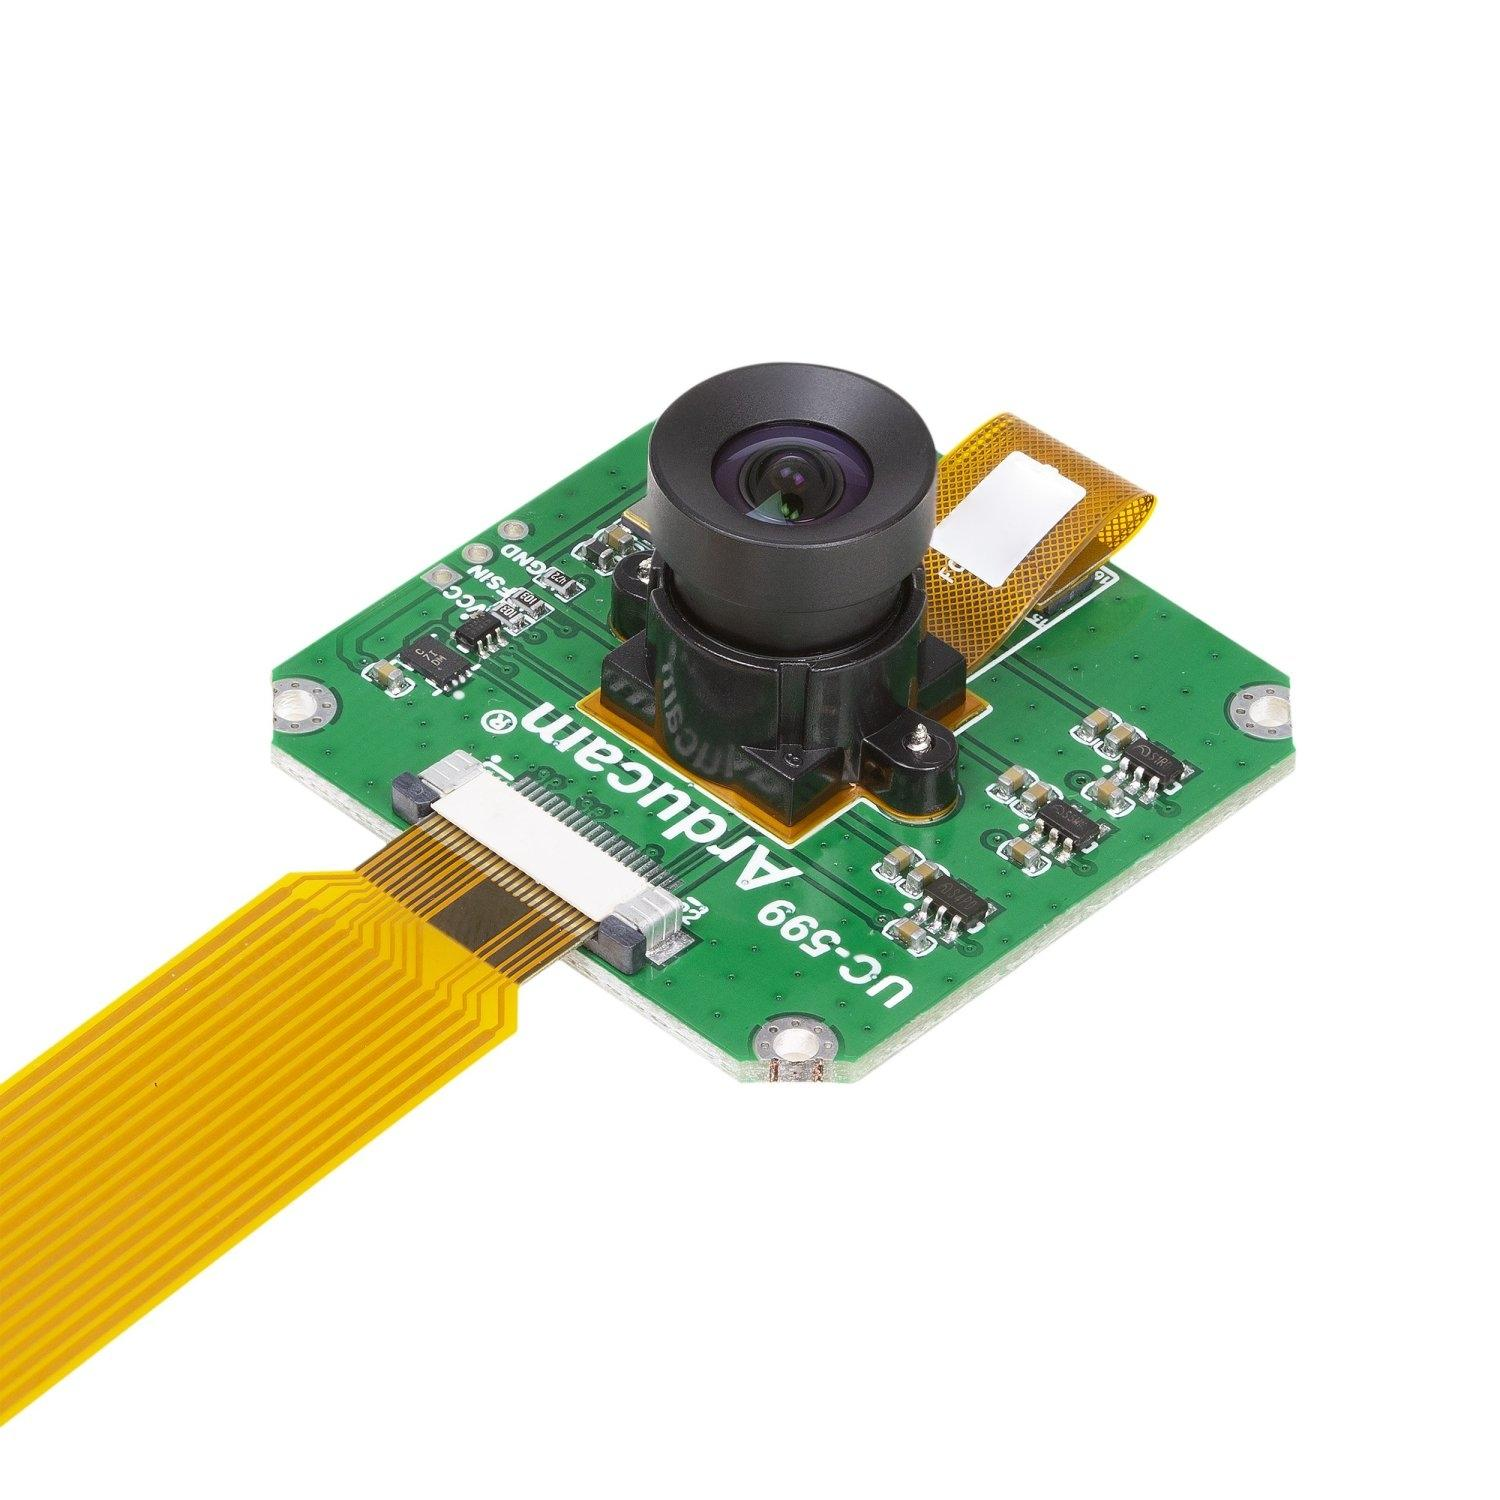 [Raspberry Pi] 1MP Arducam OV9281 MIPI 1MP Monochrome Global Shutter Camera Module with M12 Mount lens